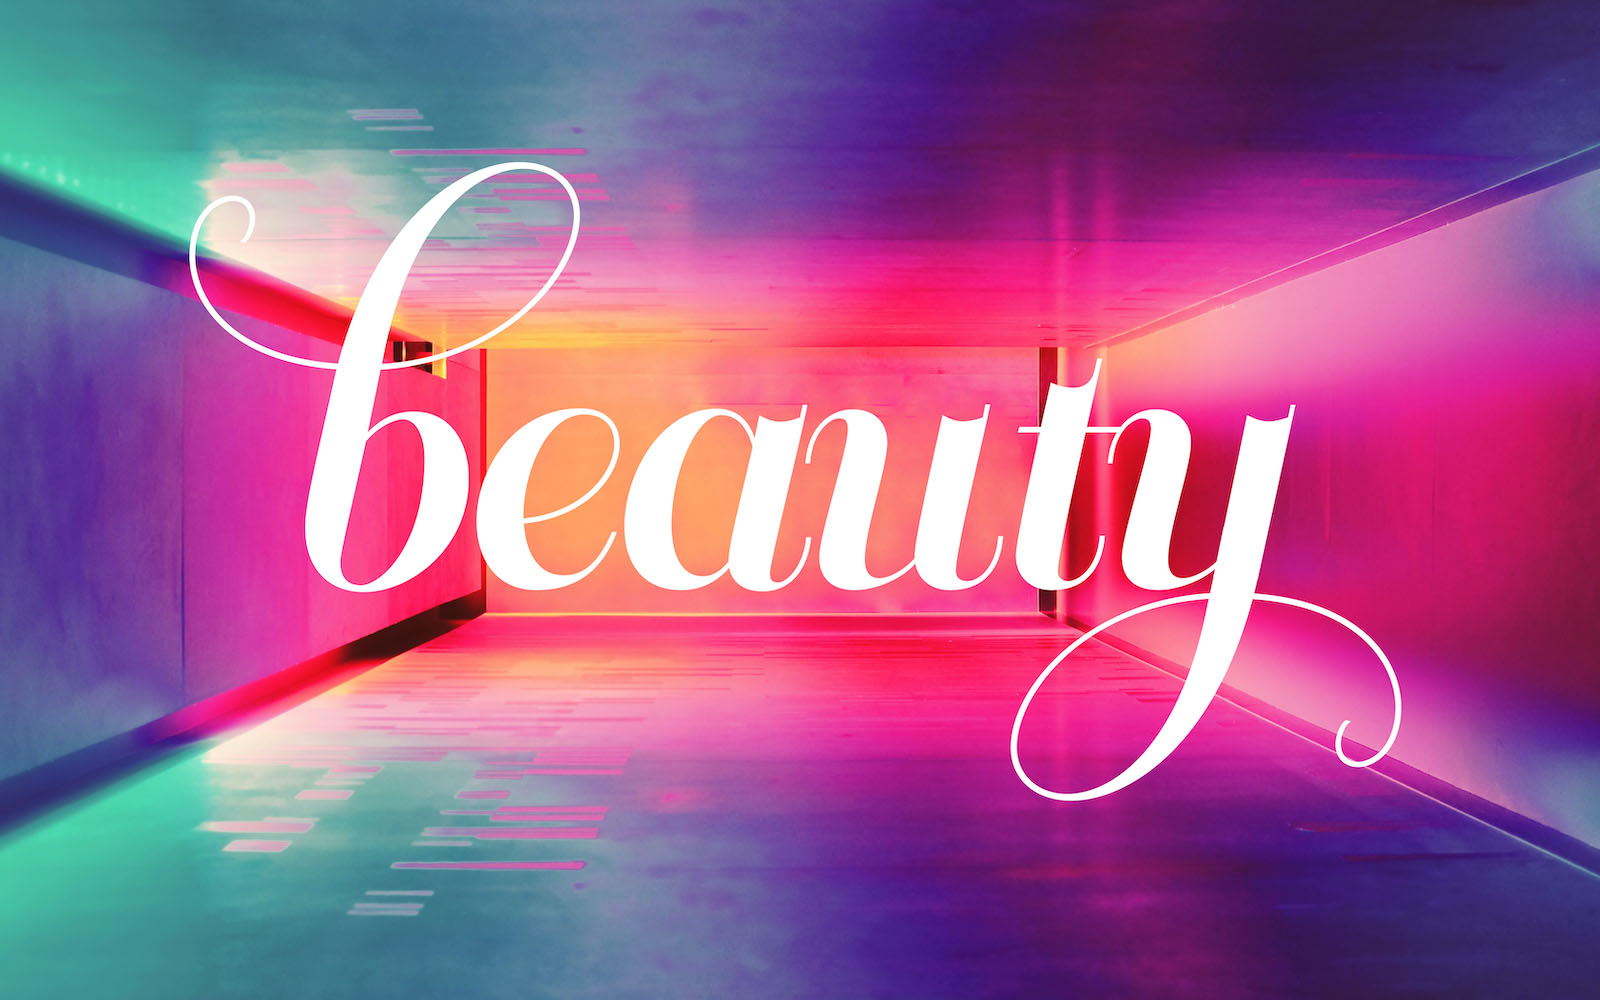 Why Has Beauty Gone Missing in Design?